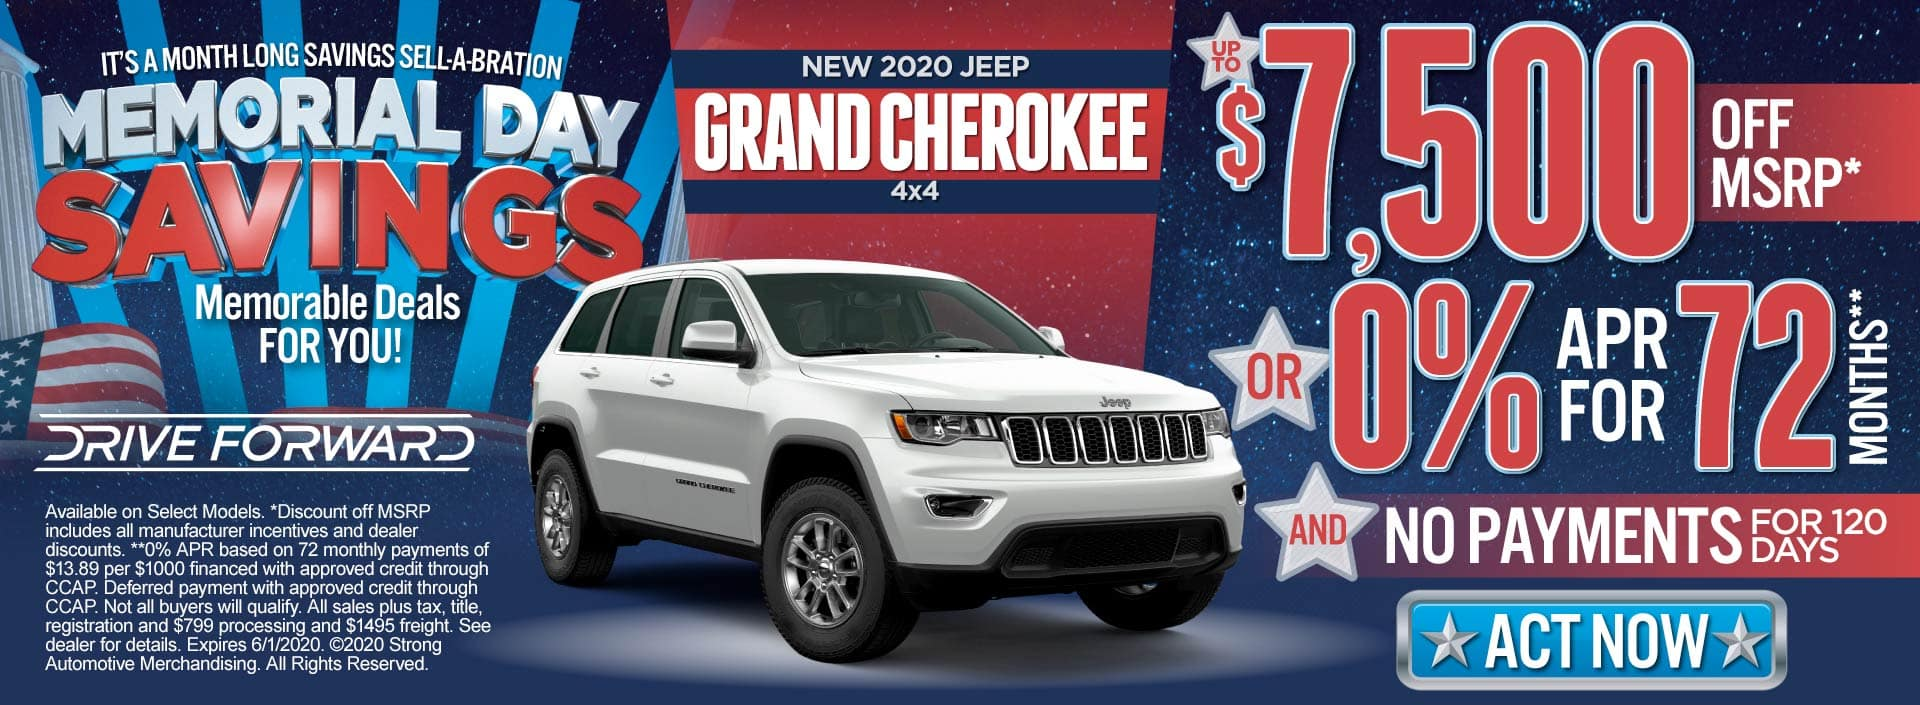 New 2020 Jeep Grand Cherokee - Up to $7,500 off MSRP or 0% for 72 months and No Payments for 120 Days - Click to View Inventory